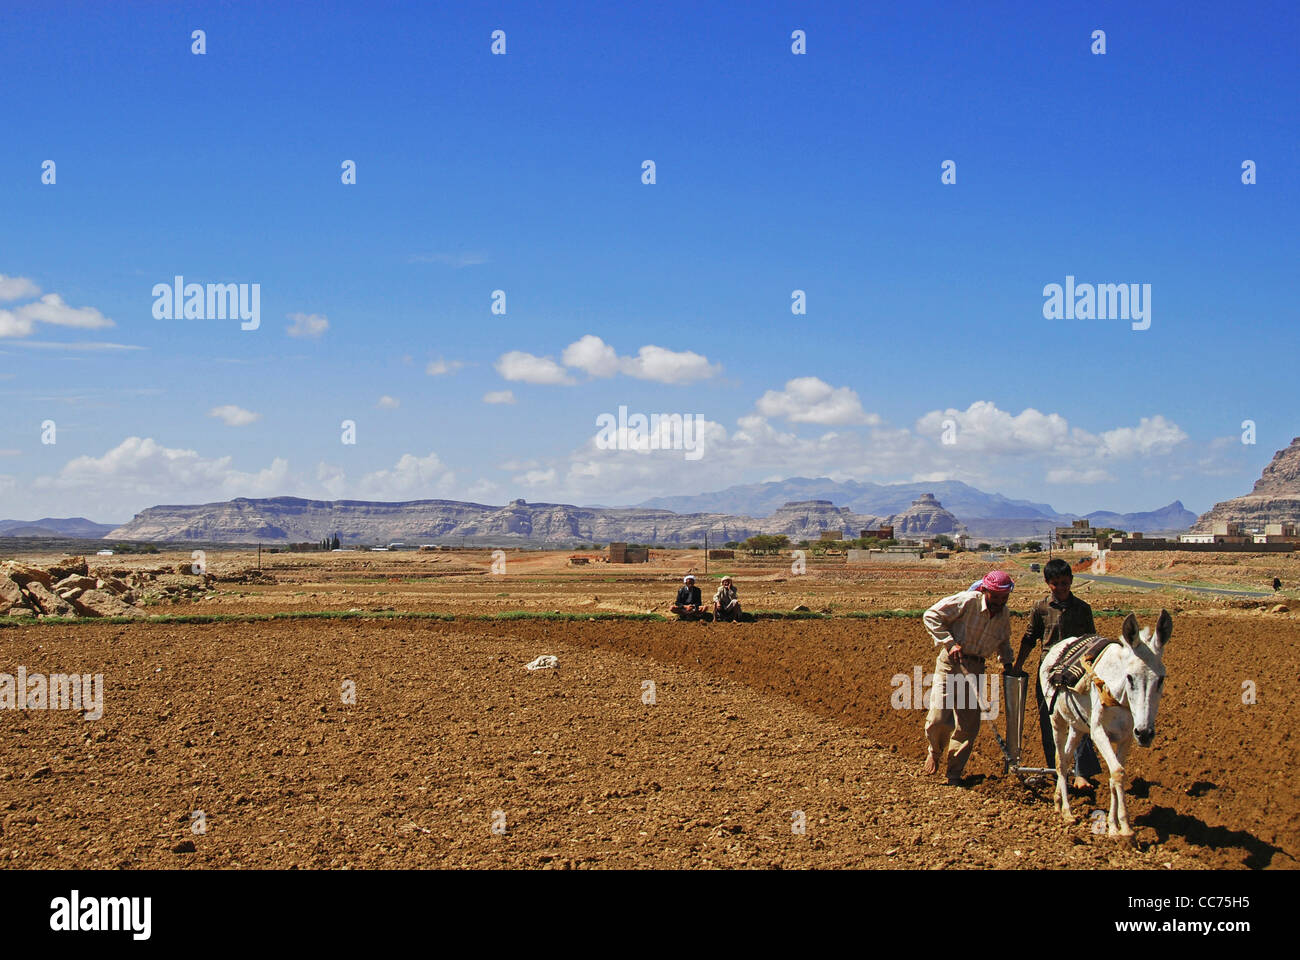 Yemen, Inland, famers with animal ploughing field on vast agricultural field on a sunny day - Stock Image